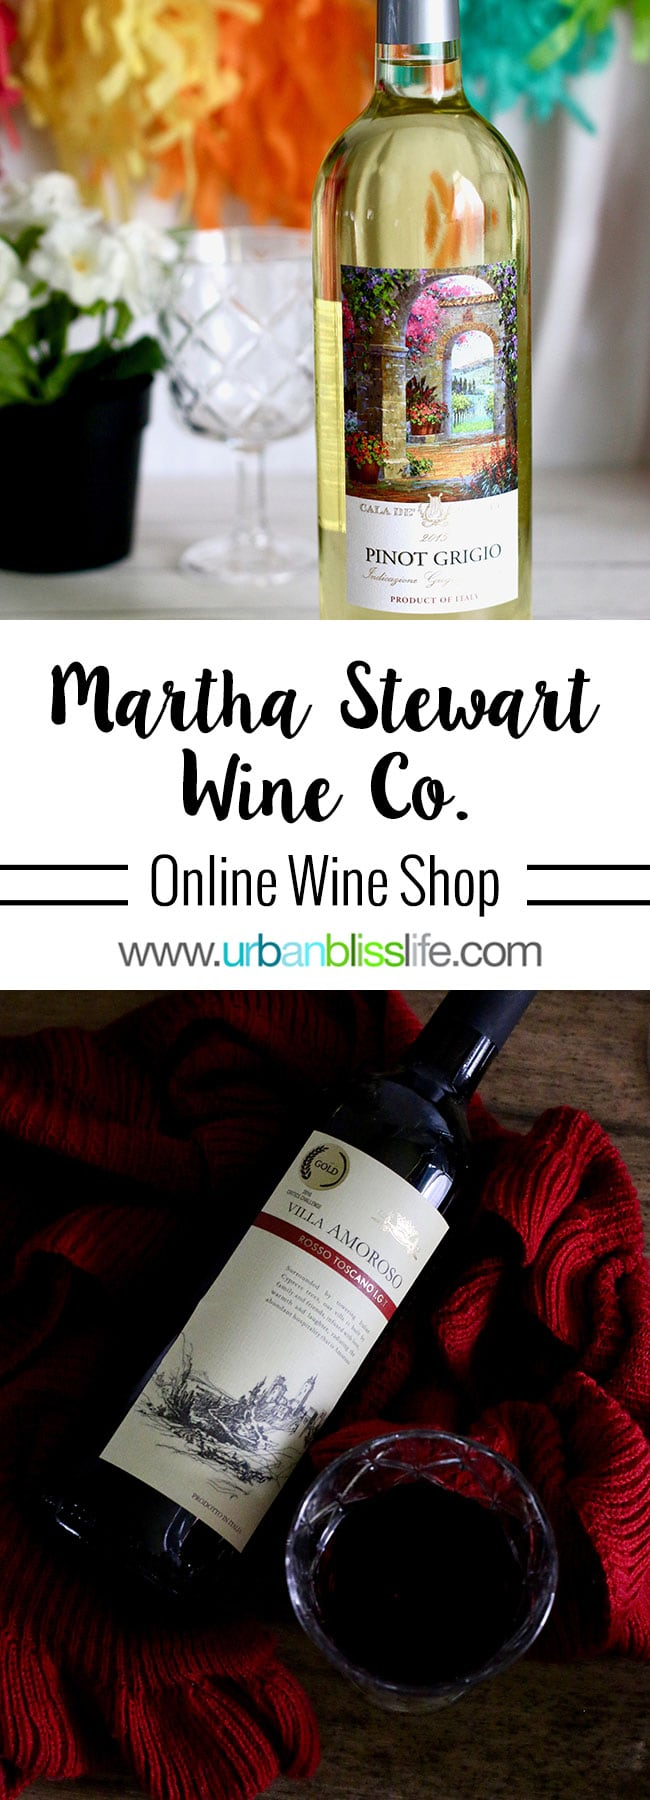 Martha Stewart Wine Co. main photo